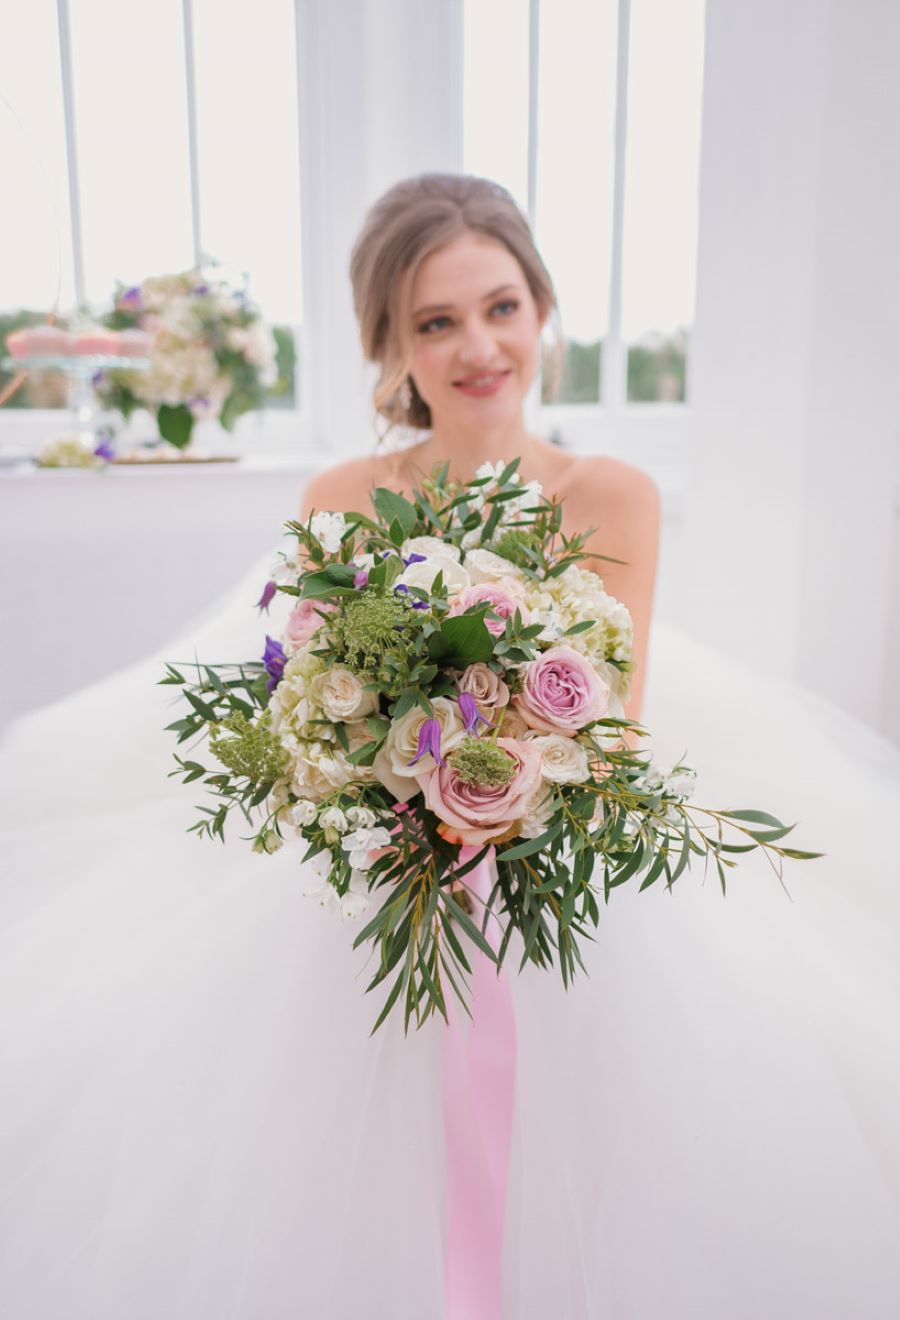 Light and romance with natural blush tones - wedding ideas from Downham Hall. Photographer credit Magical Moments Photography (40)